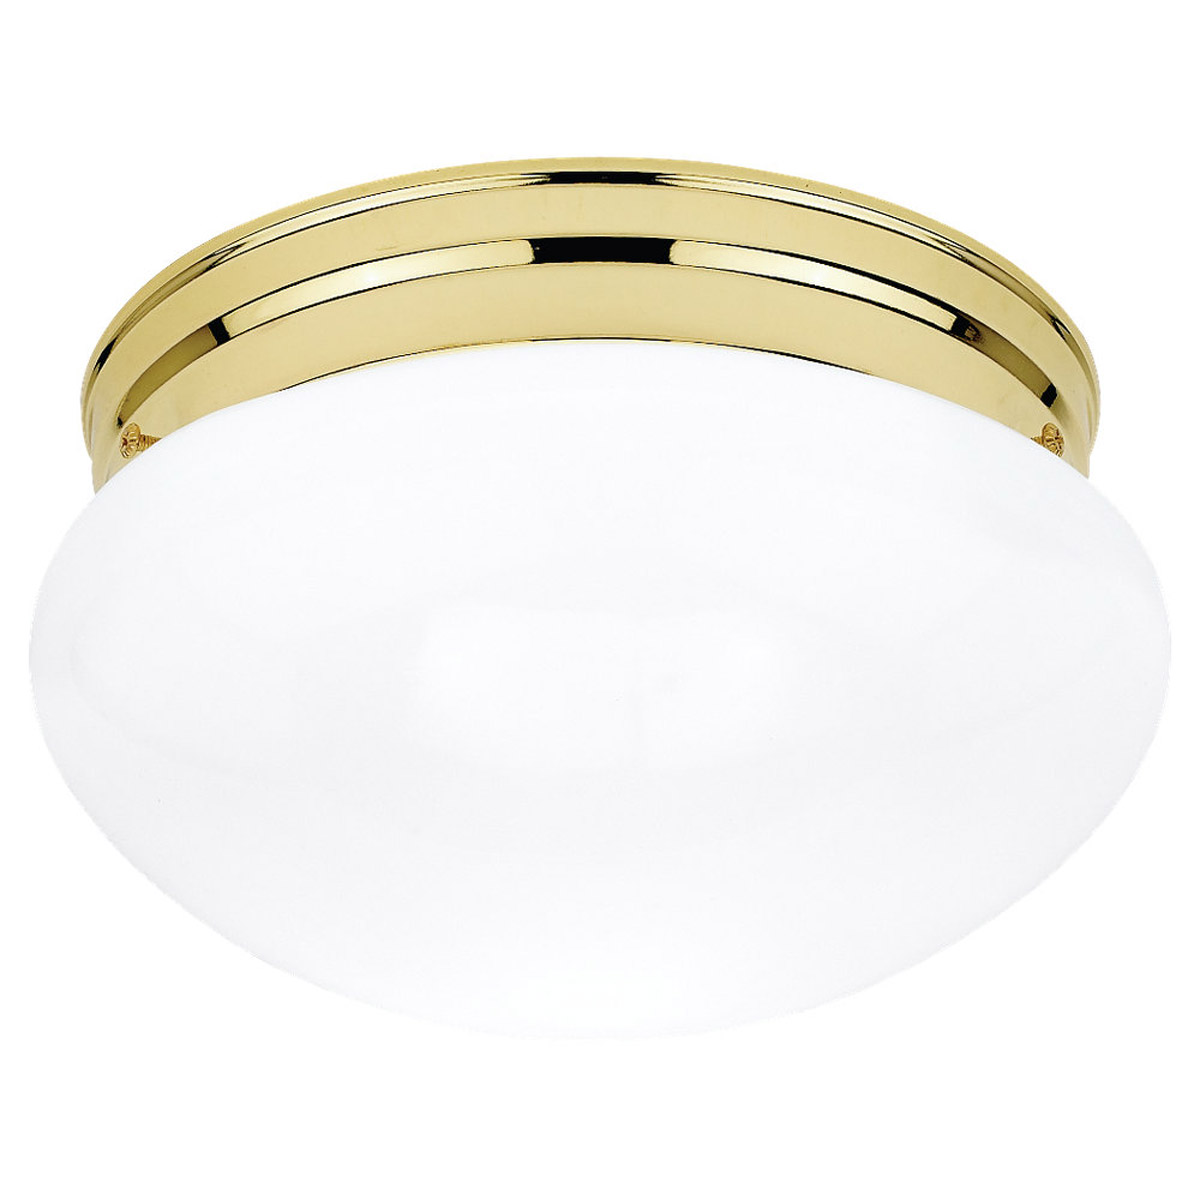 Sea Gull Lighting Webster 1 Light Flush Mount in Polished Brass 5326-02